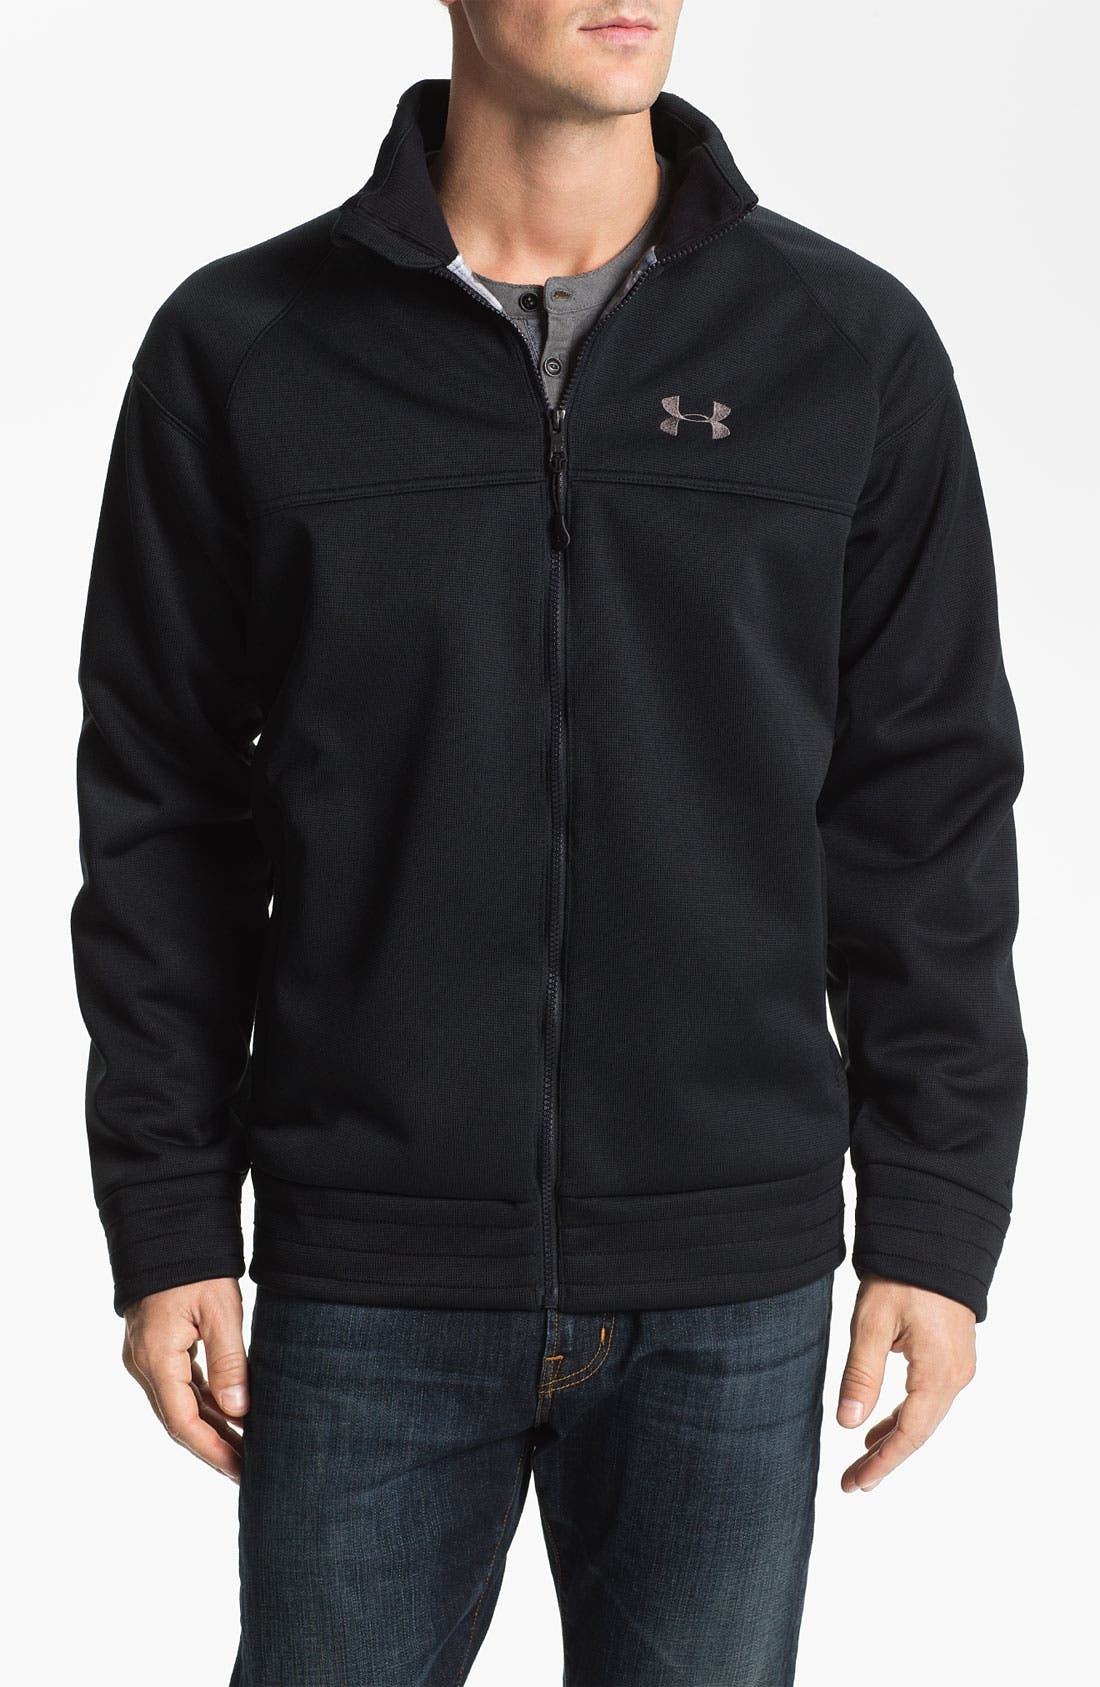 Main Image - Under Armour 'Swagger Storm' Wind Jacket